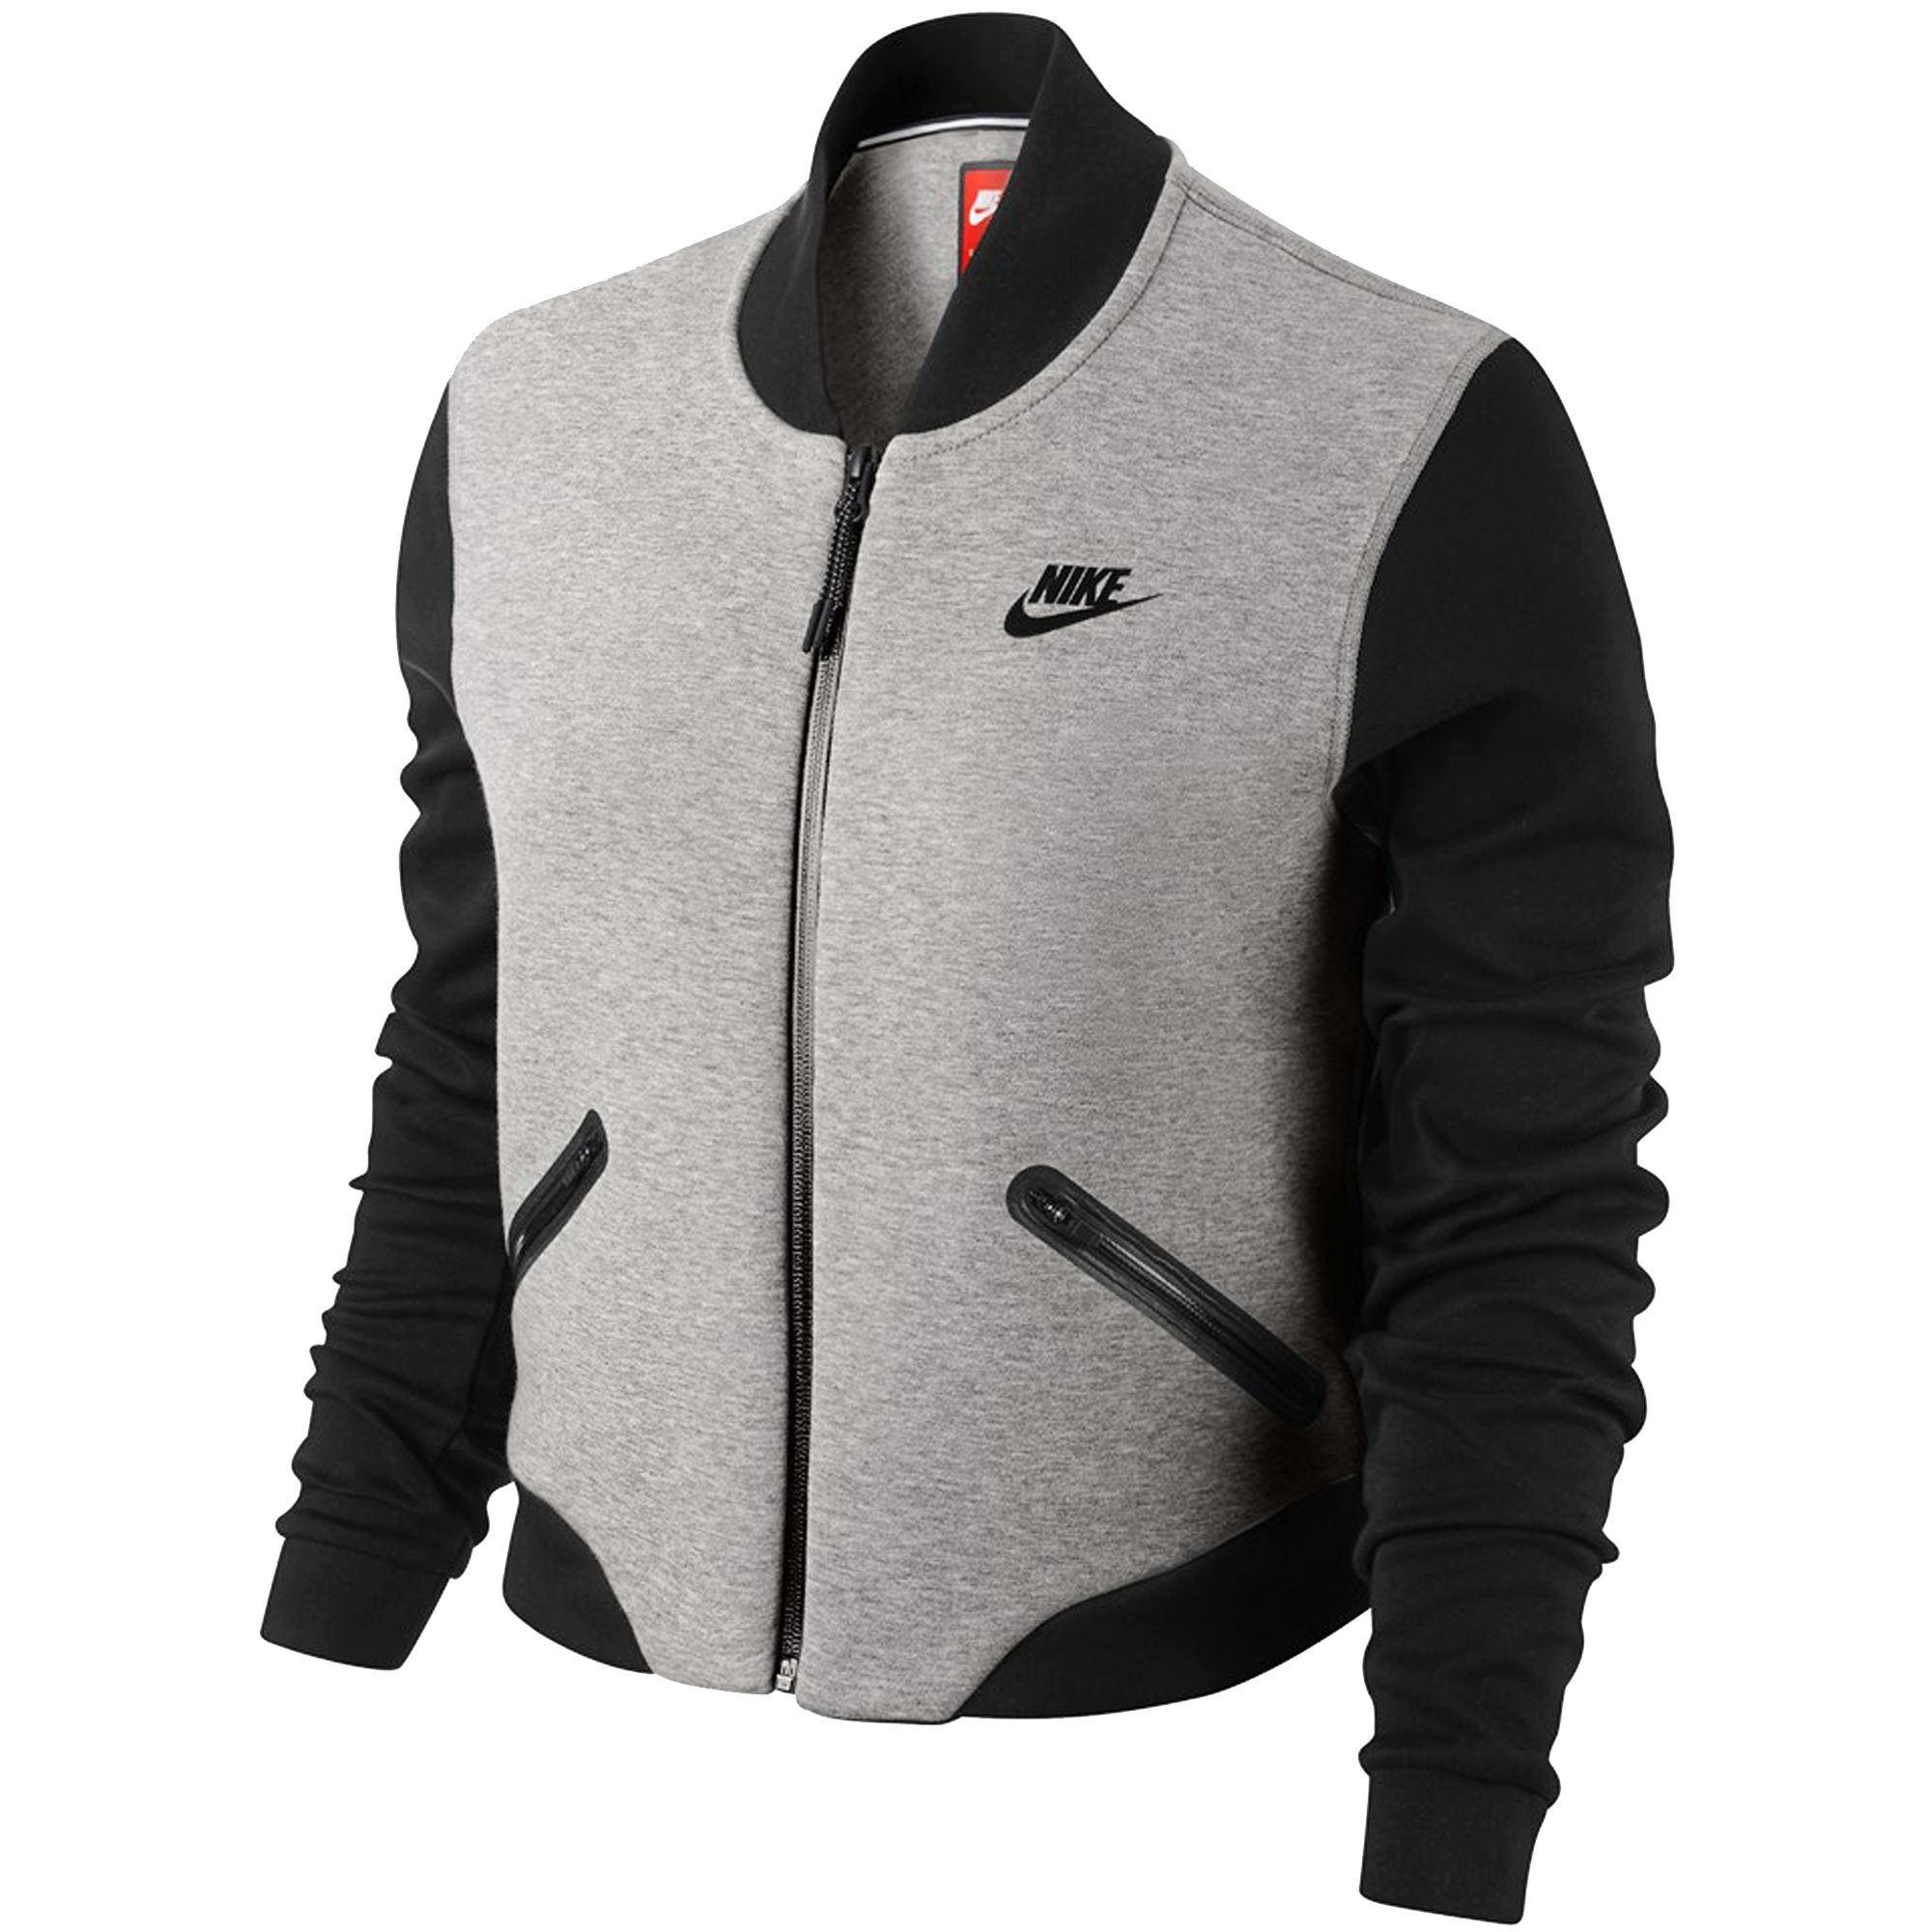 Fleece JacketsY Jacket Tech CeketSport Bomber Nike qGSUMpVz